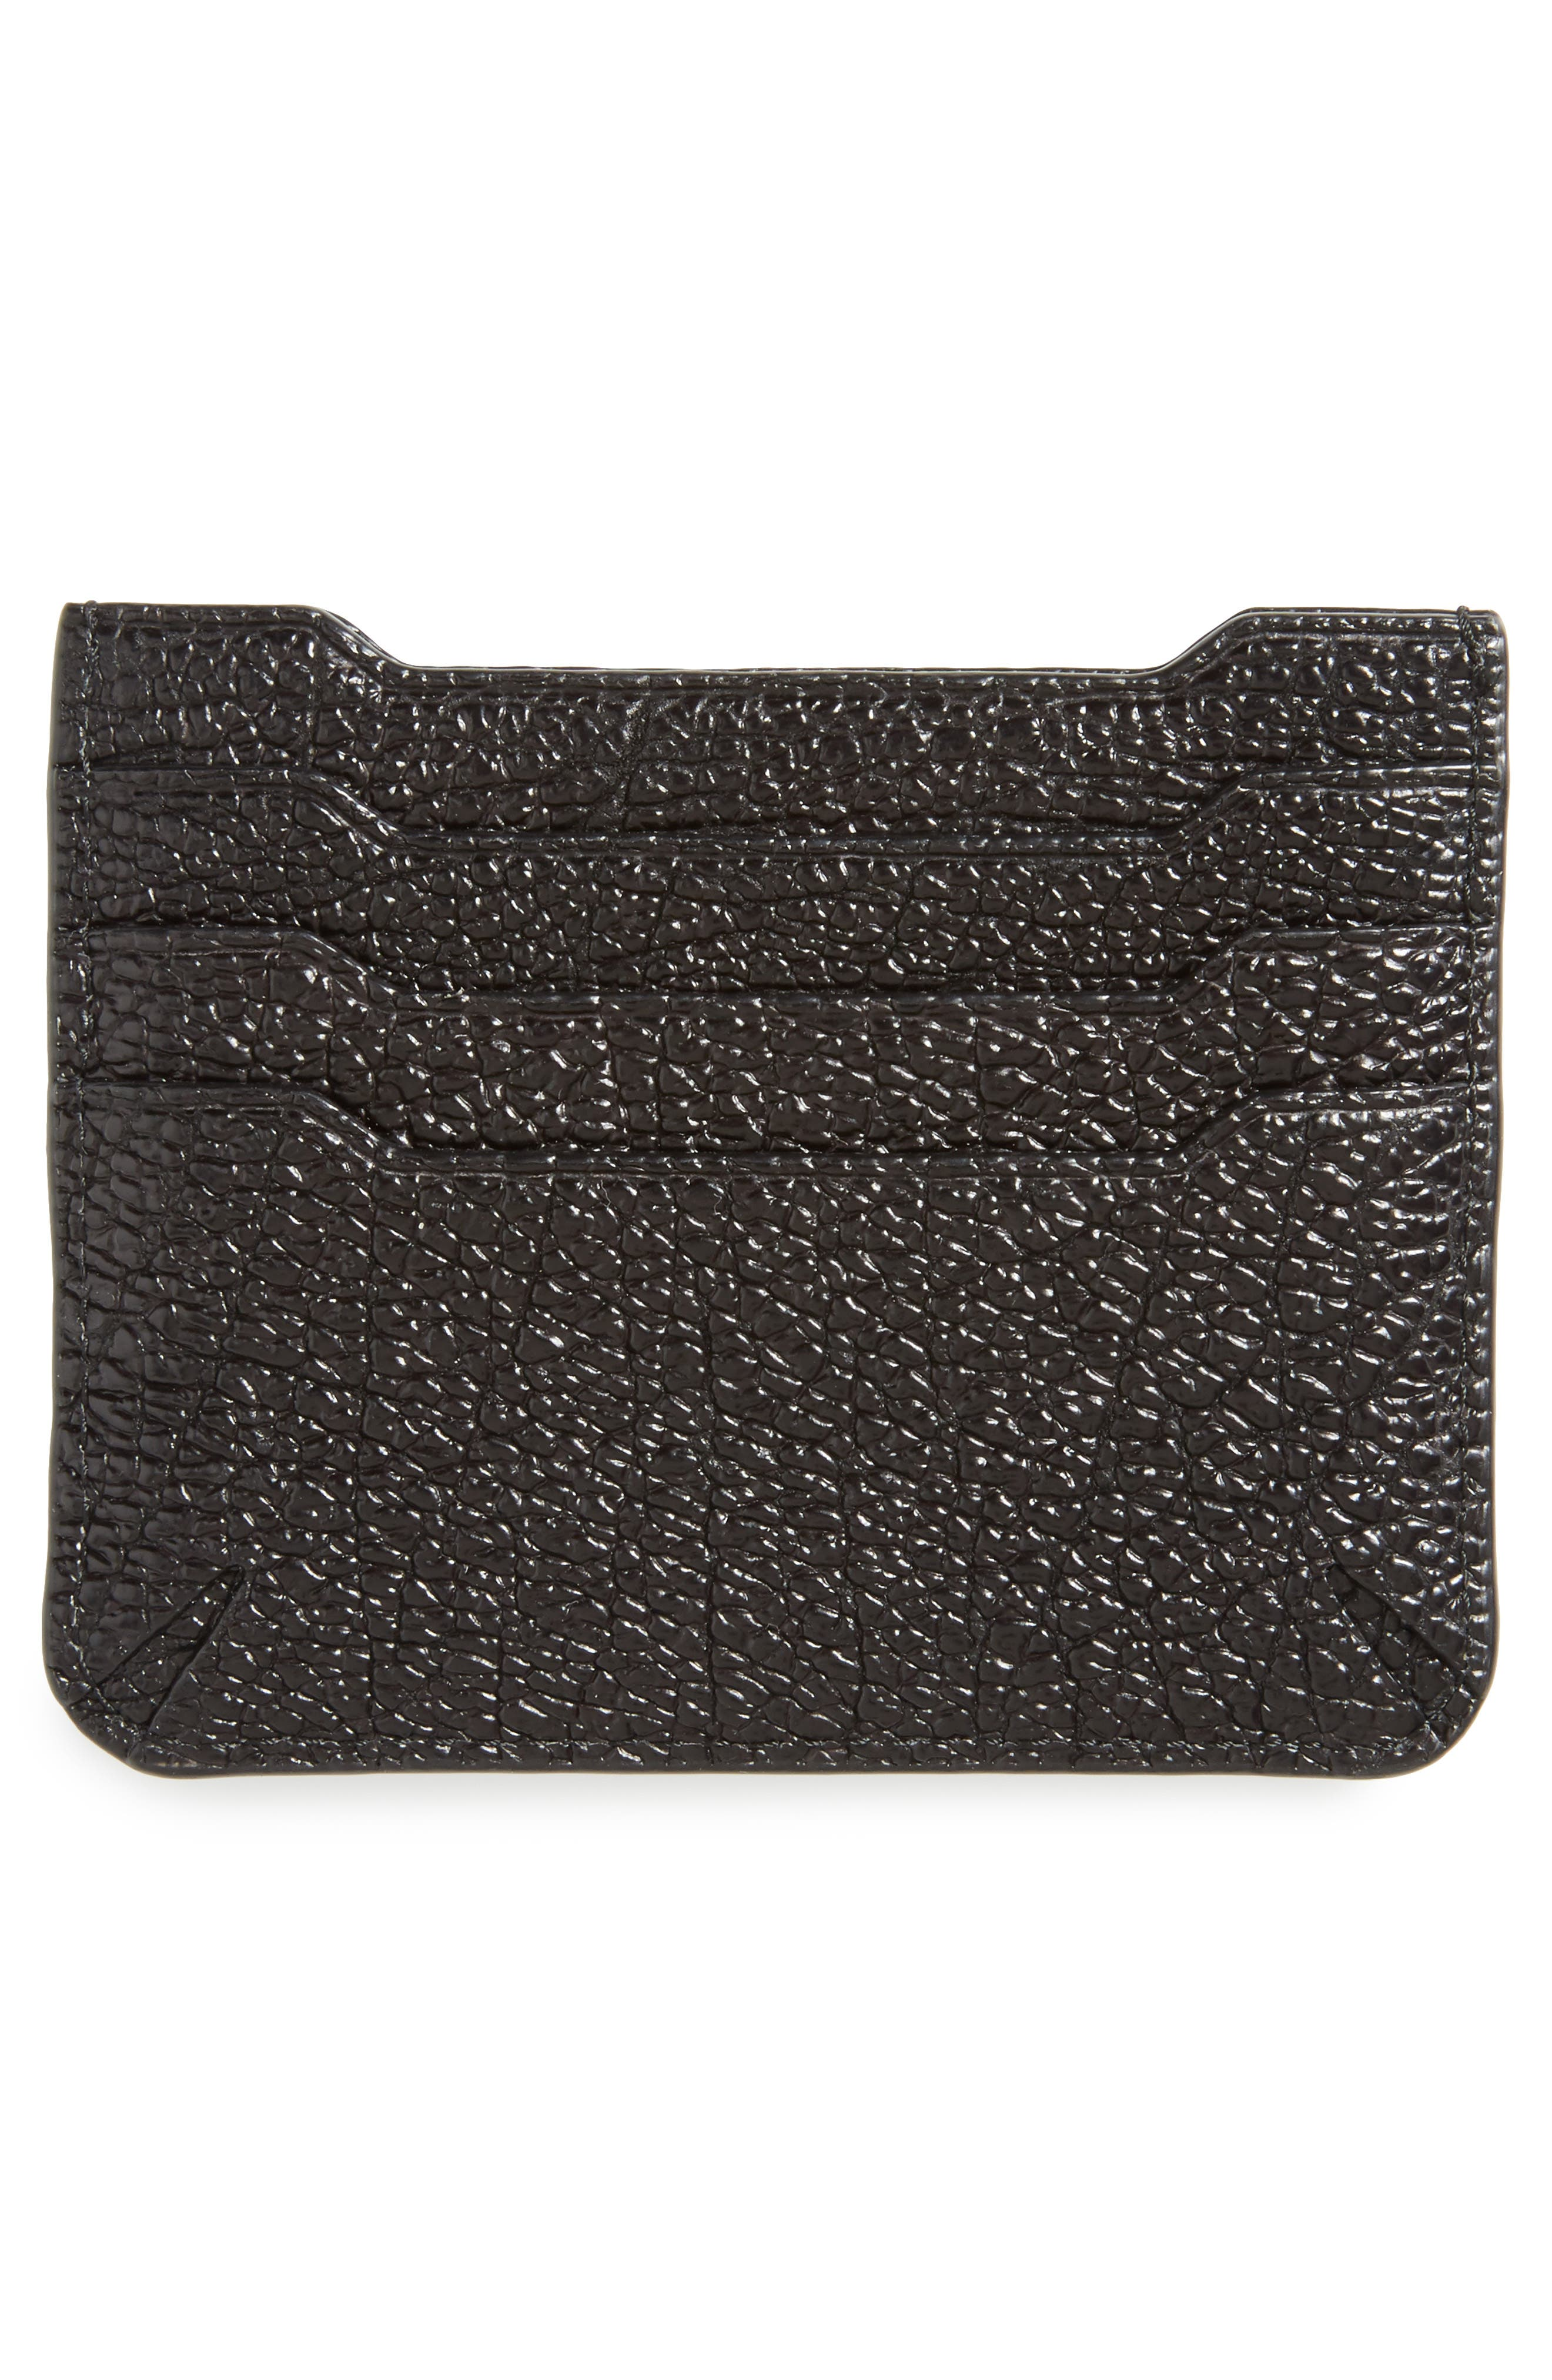 'Crosby' Crackle Leather Card Case,                             Alternate thumbnail 2, color,                             001